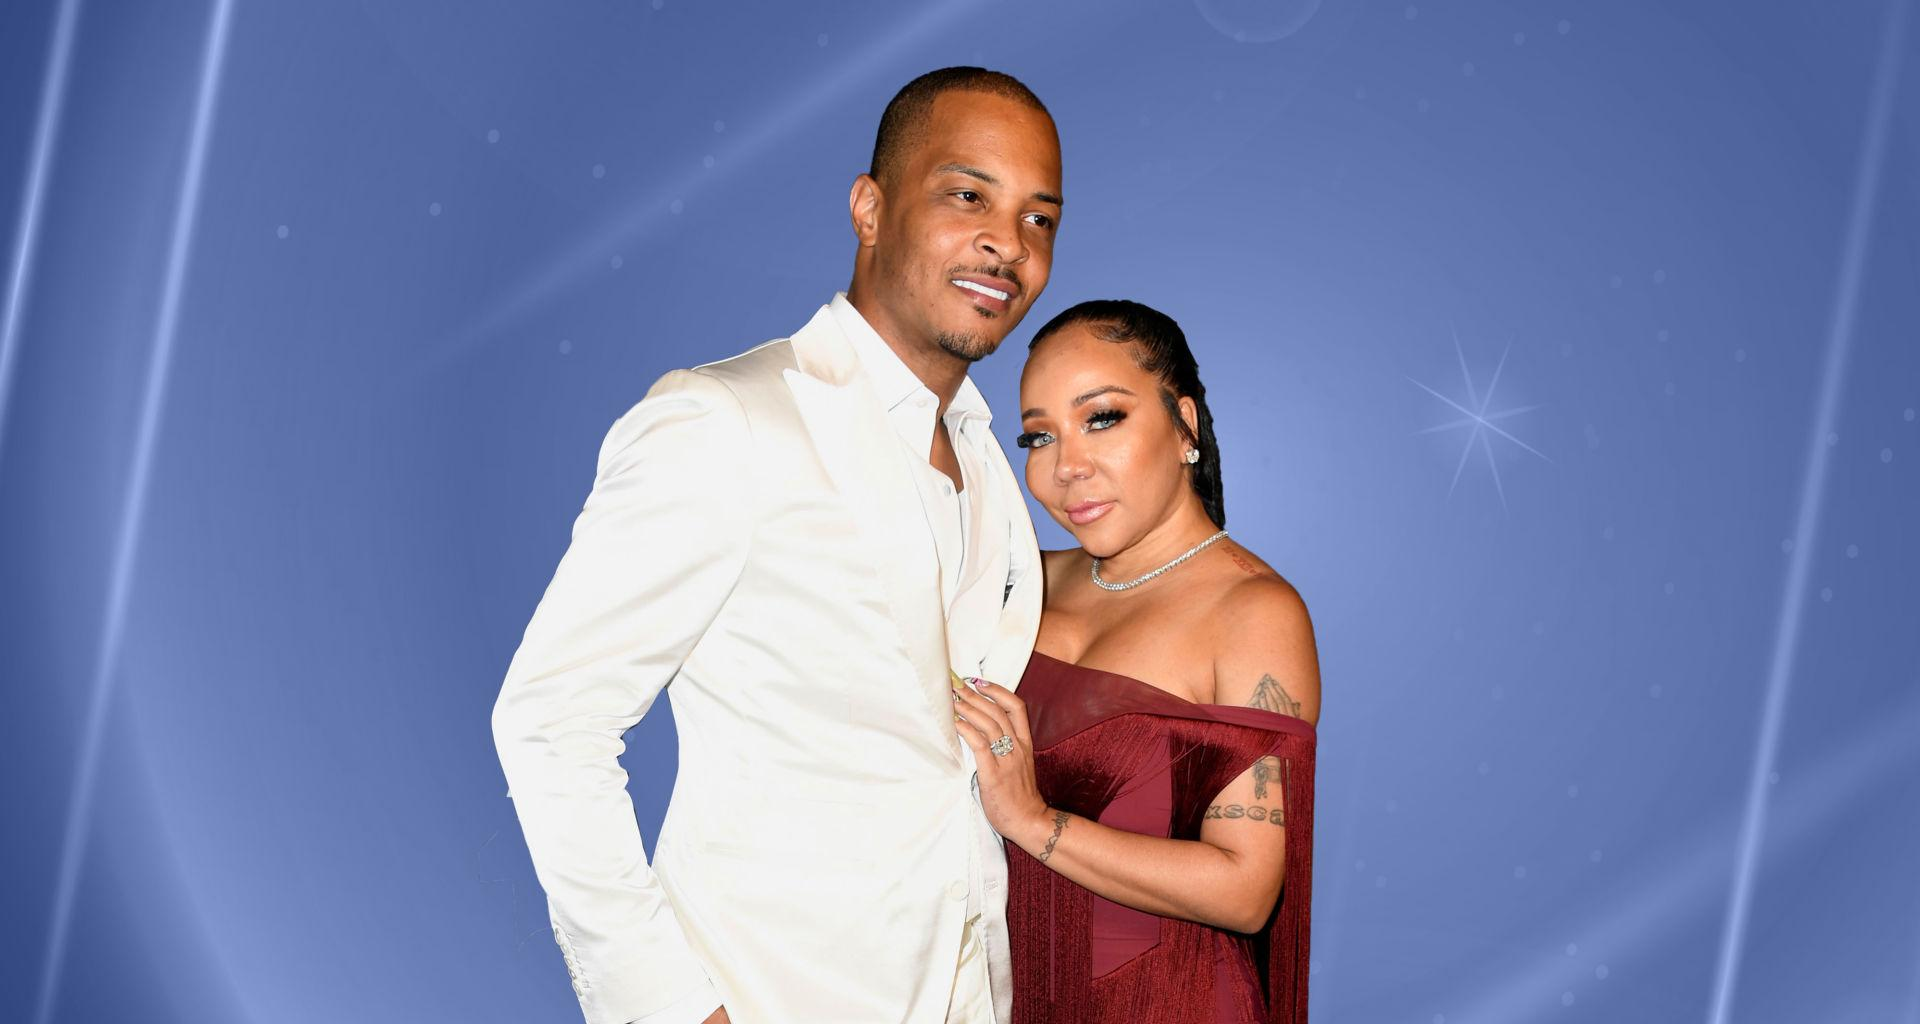 T.I. Doesn't Care About The Hate He Got Online After Admitting To Cheating On Tiny Harris - Here's Why!